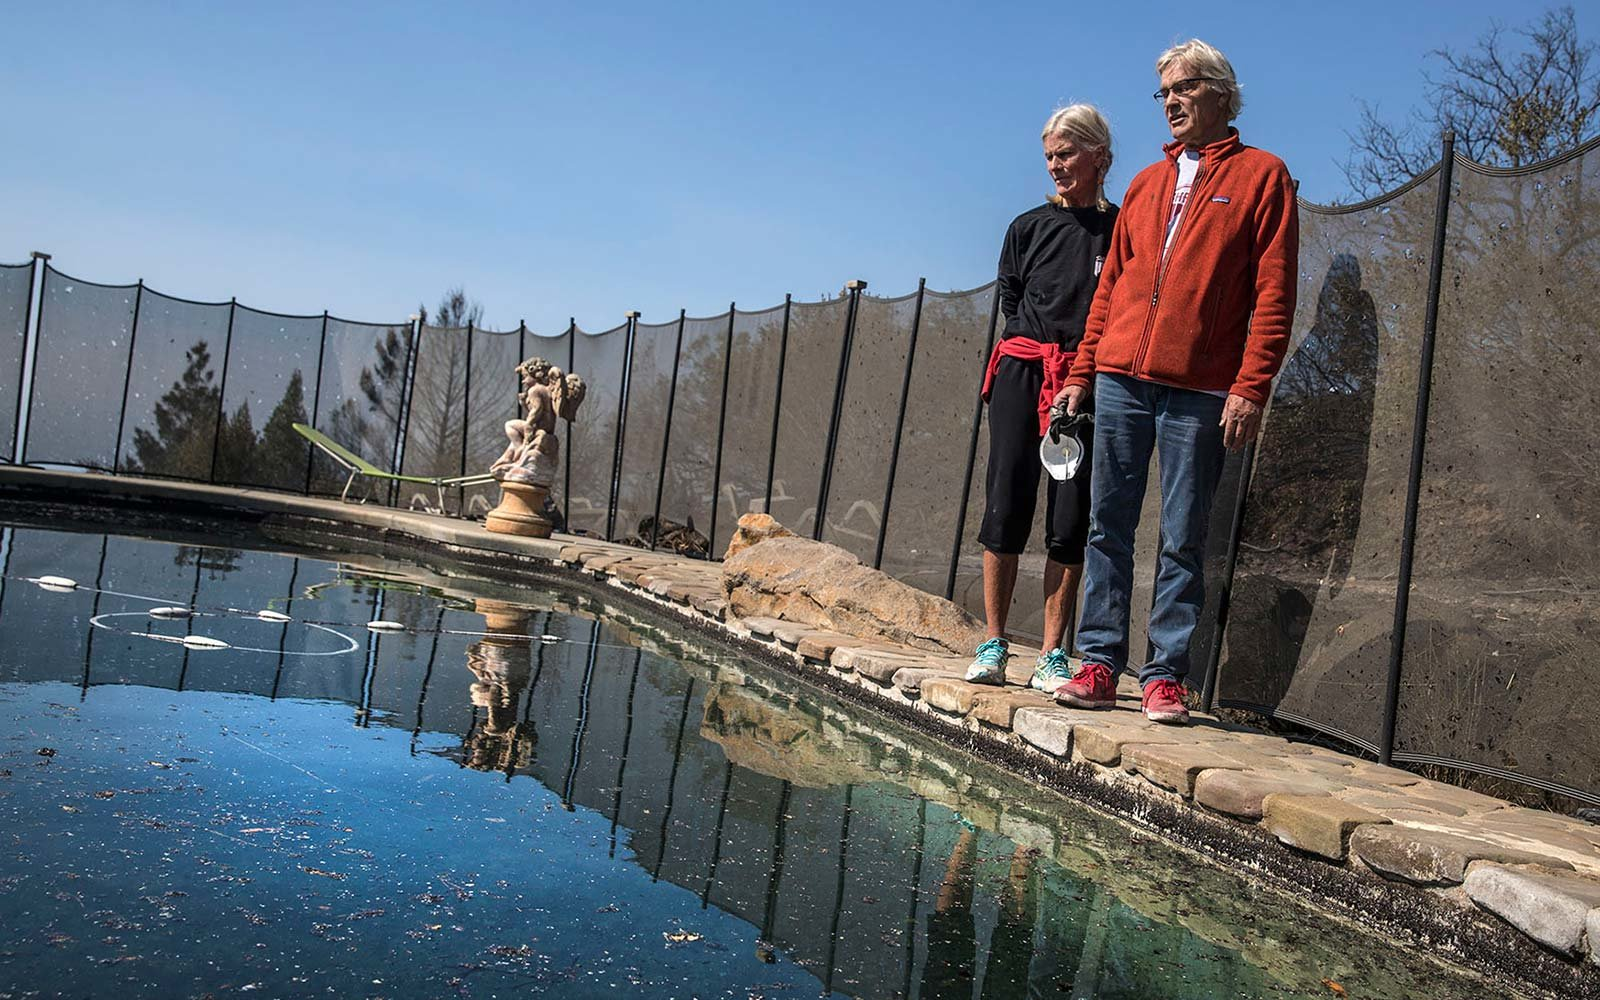 John and Jan Pascoe survive california fire in swimming pool Santa Rosa